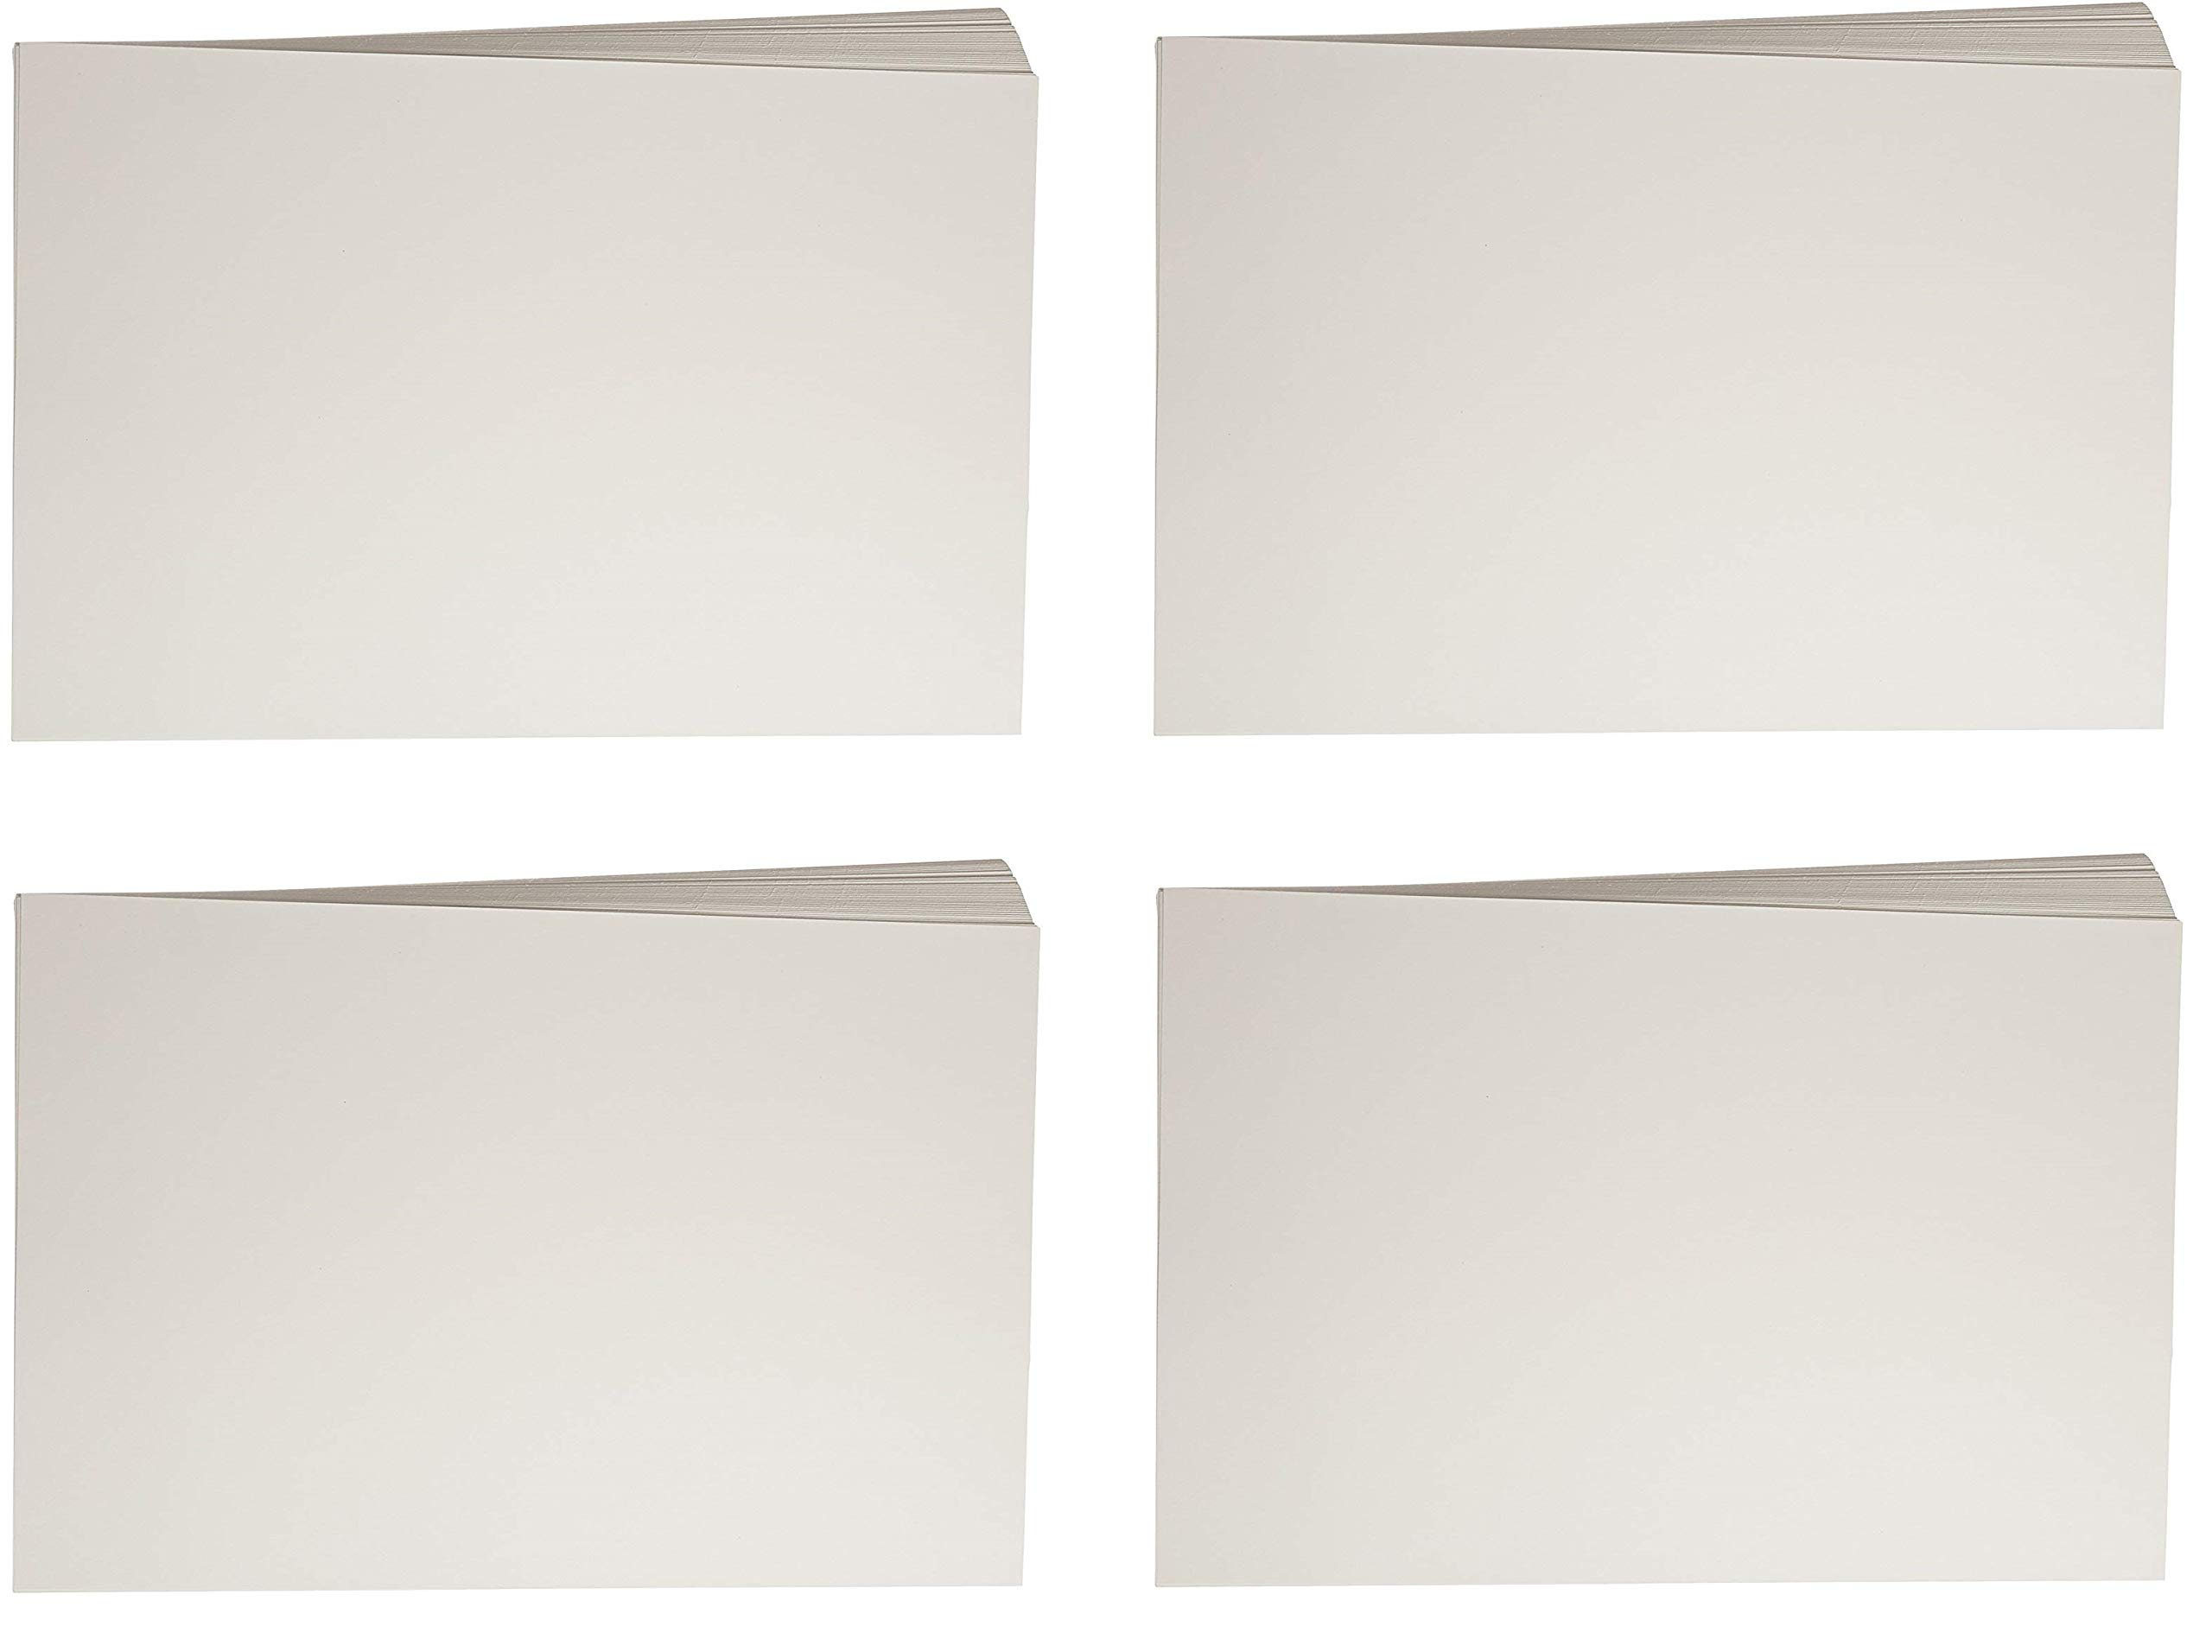 Sax Watercolor Beginner Paper, 90 lbs, 12 x 18 Inches, Natural White, Pack of 100 (4 X Pack of 100)